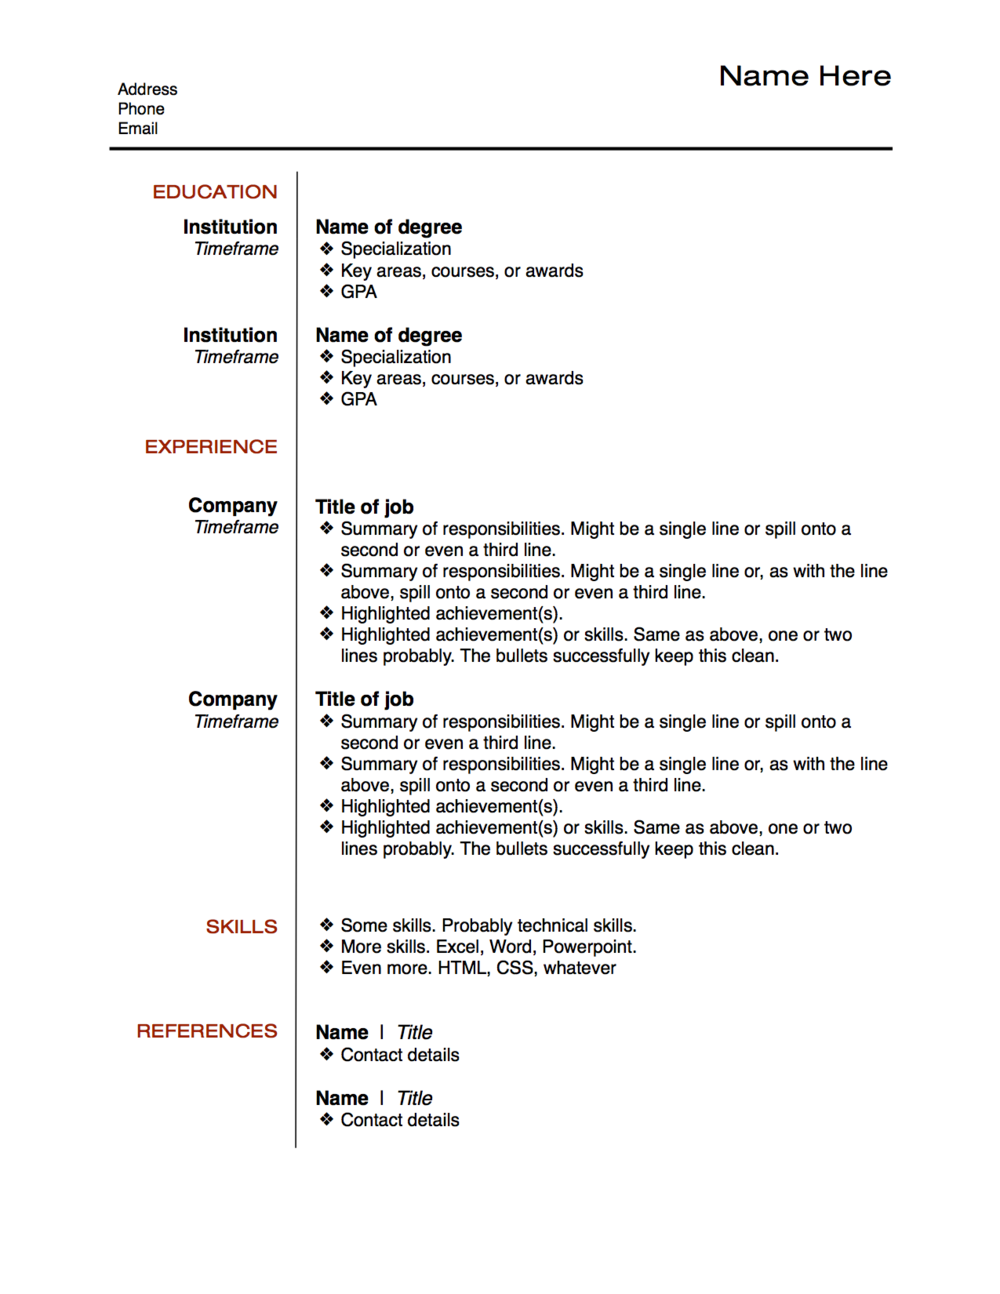 resume layout examplepng - Resume Bullet Points